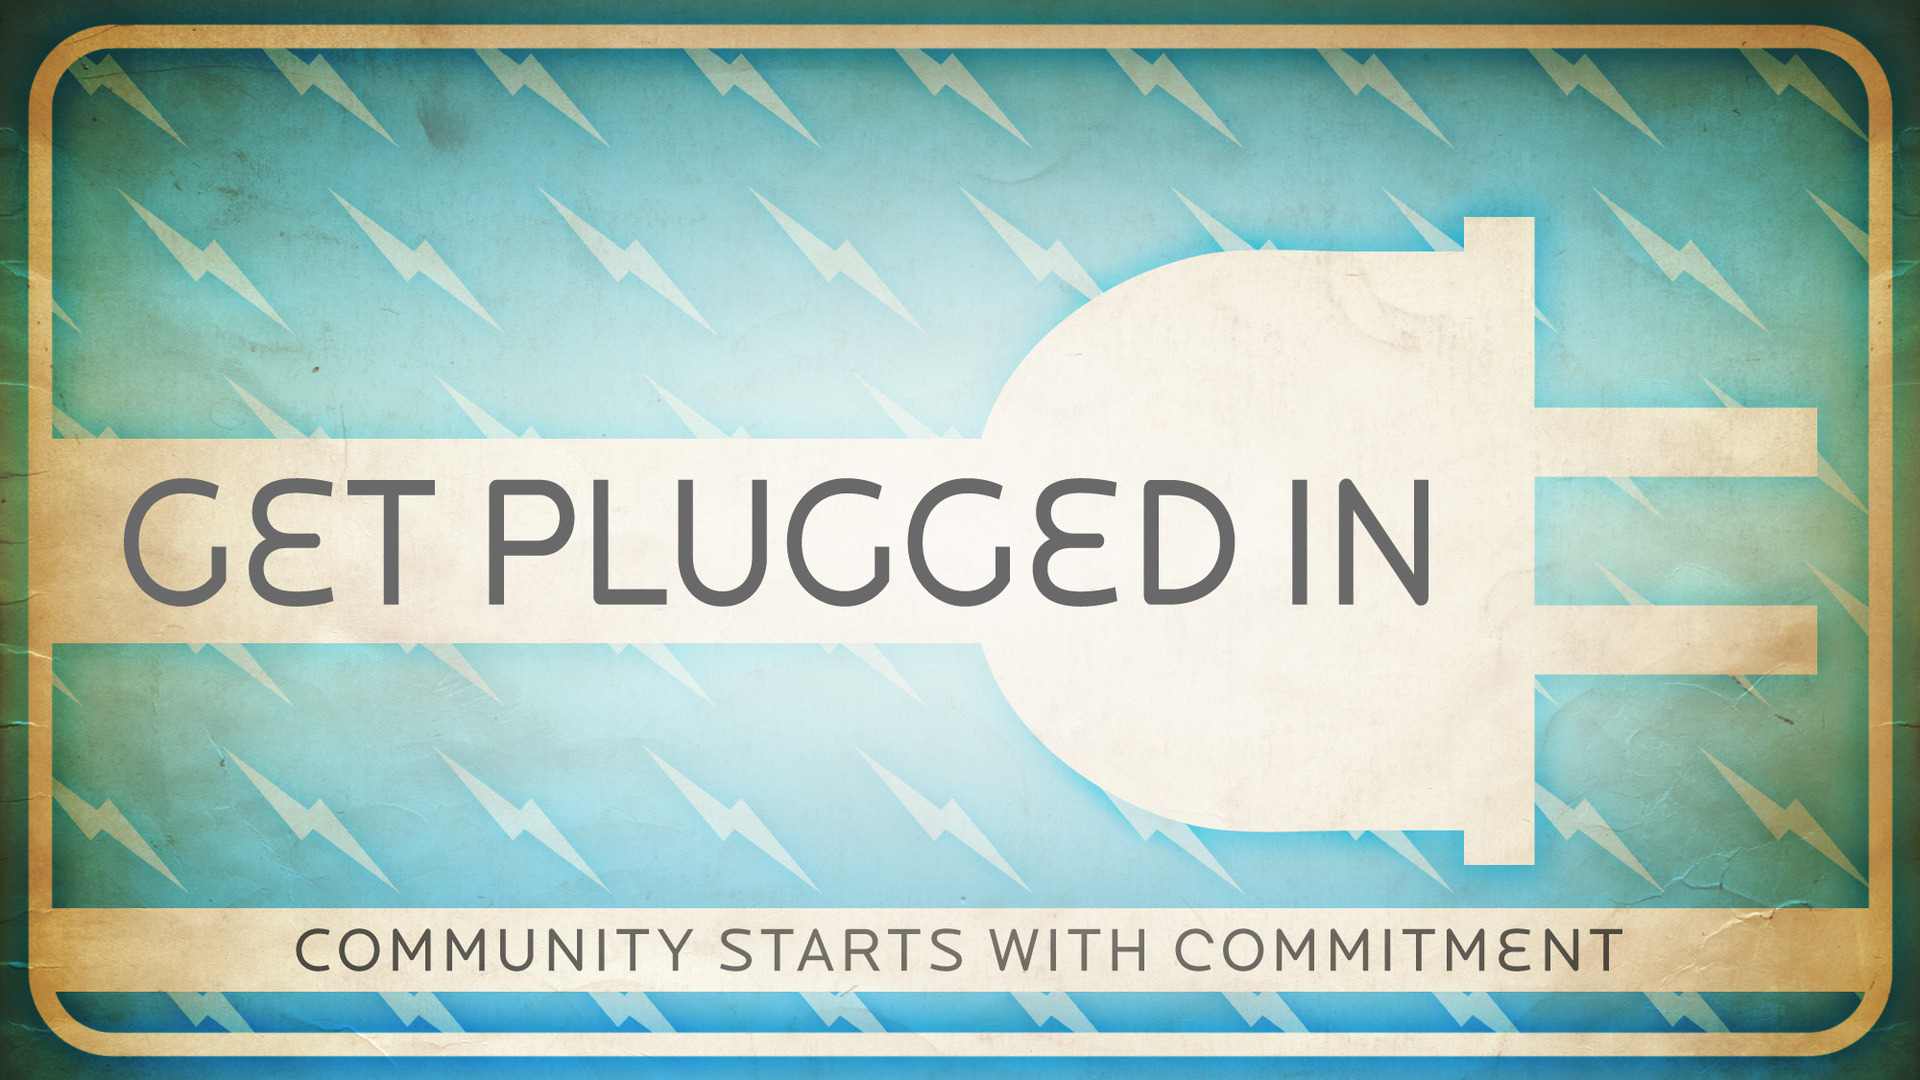 get_plugged_in-title-1-still-16x9 copy.jpg